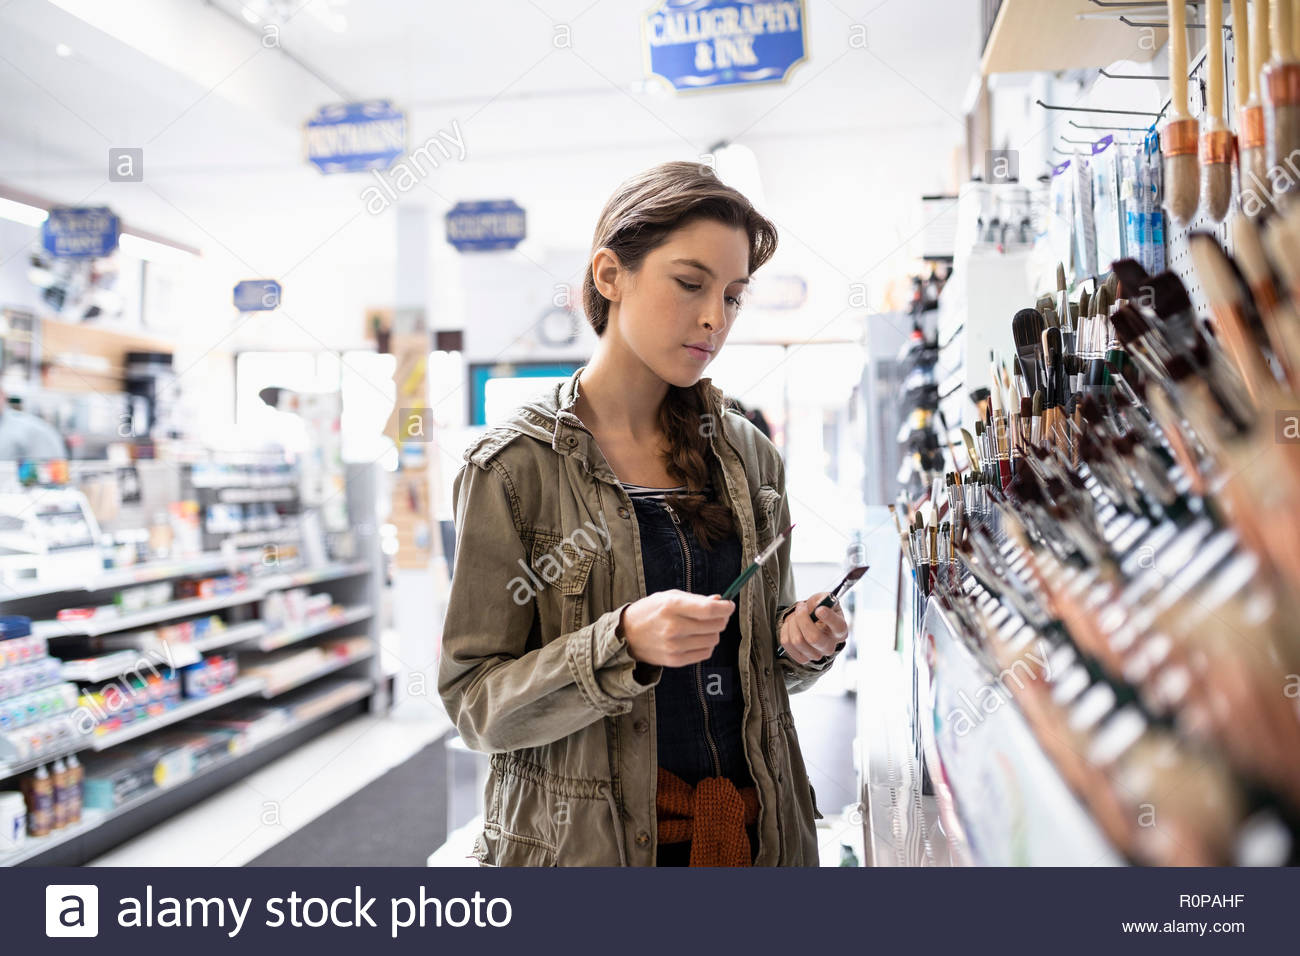 Woman shopping for paintbrushes in art supply shop - Stock Image